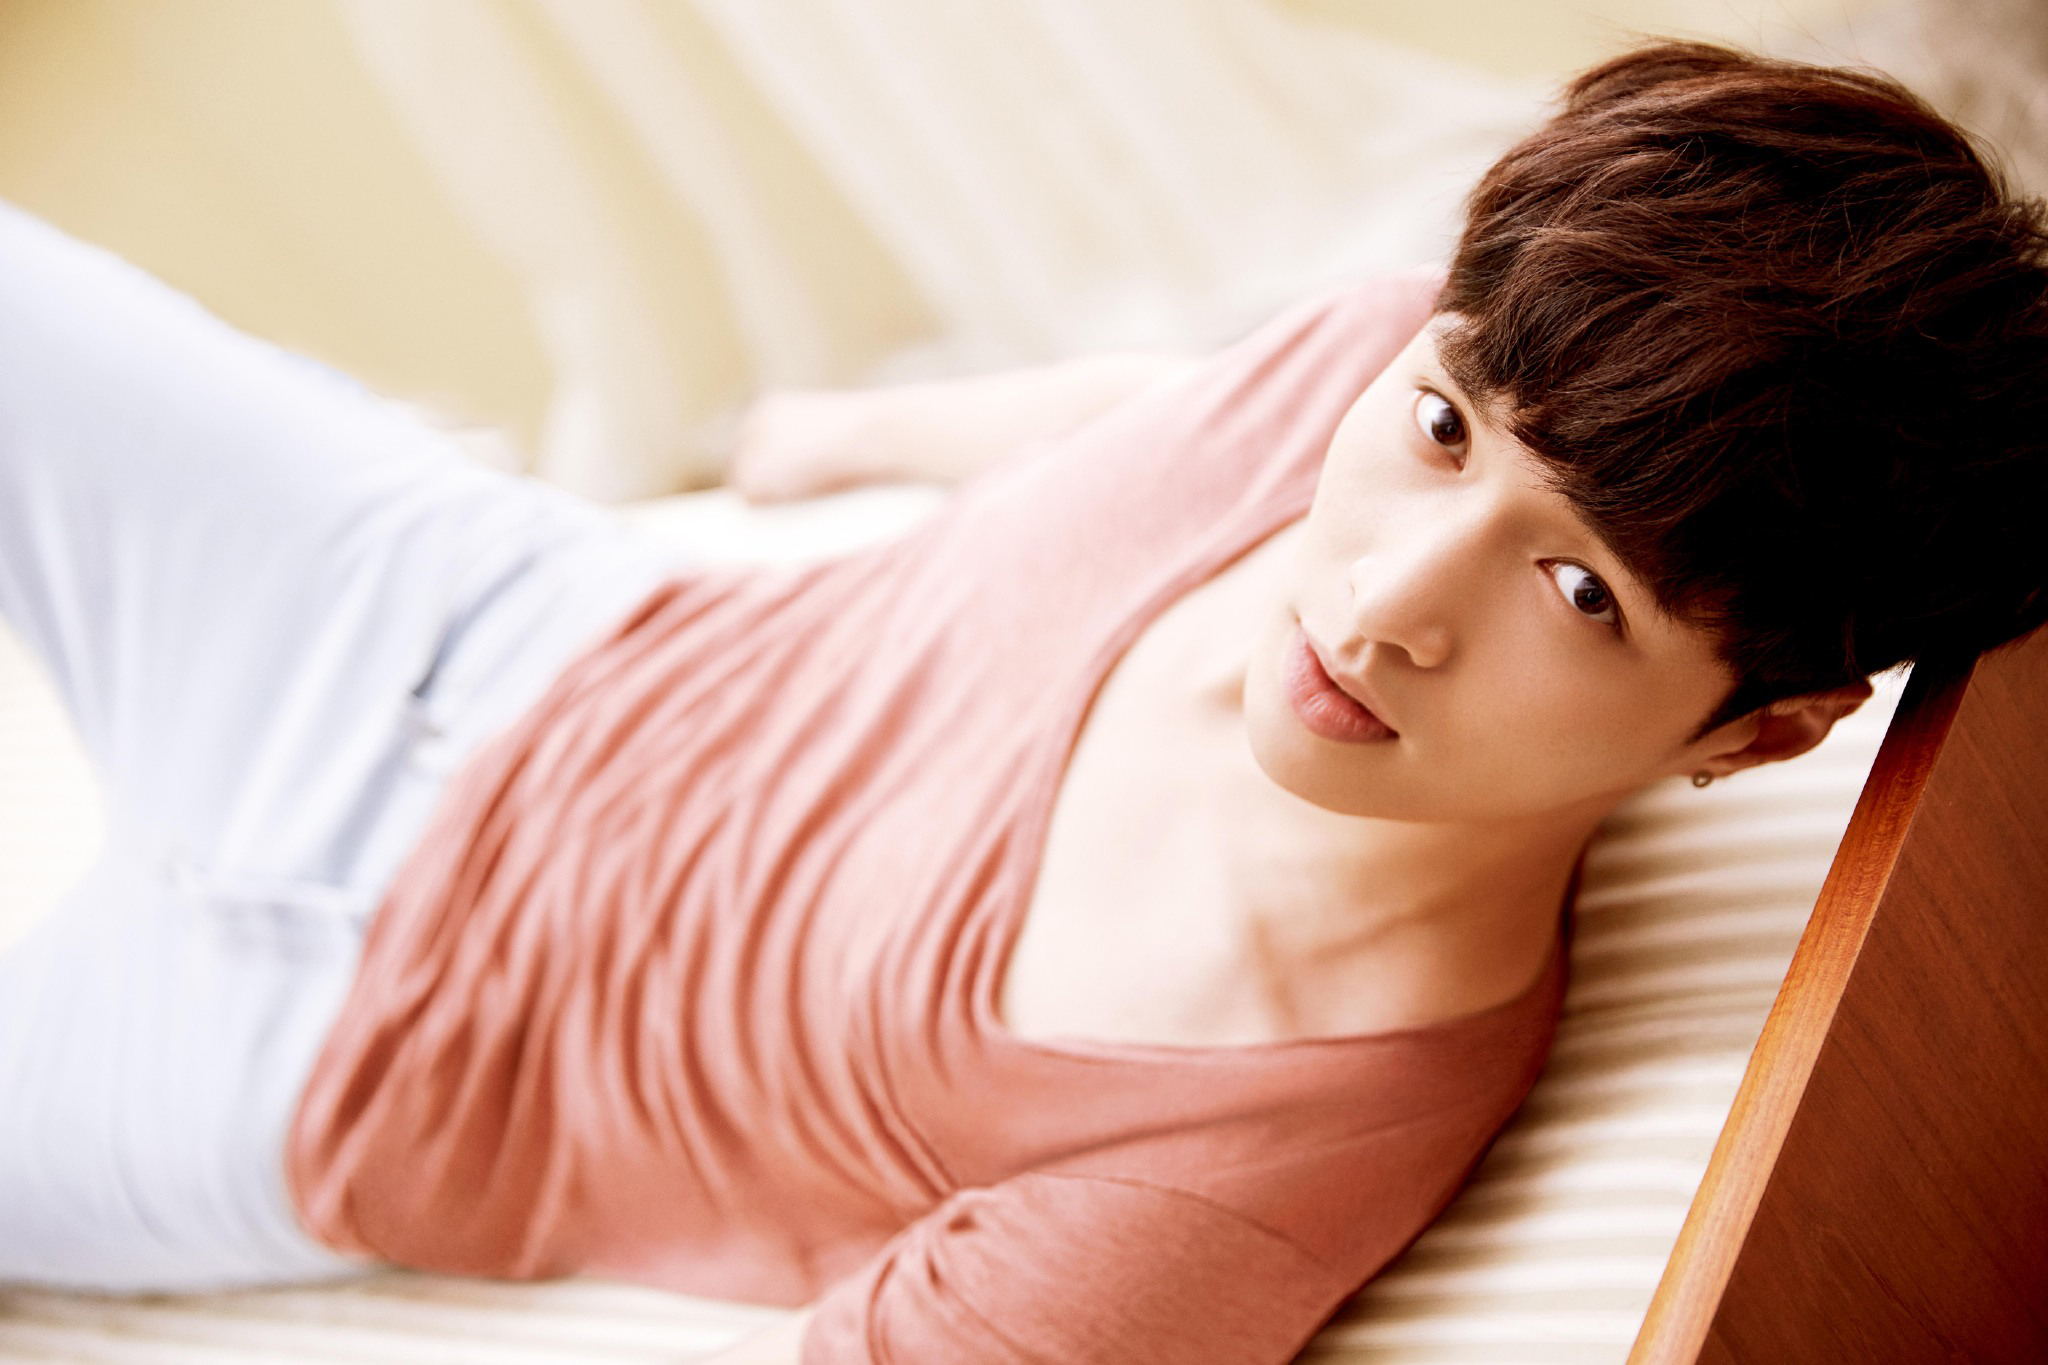 EXO's Lay Is Hospitalized After Collapsing From Food Poisoning